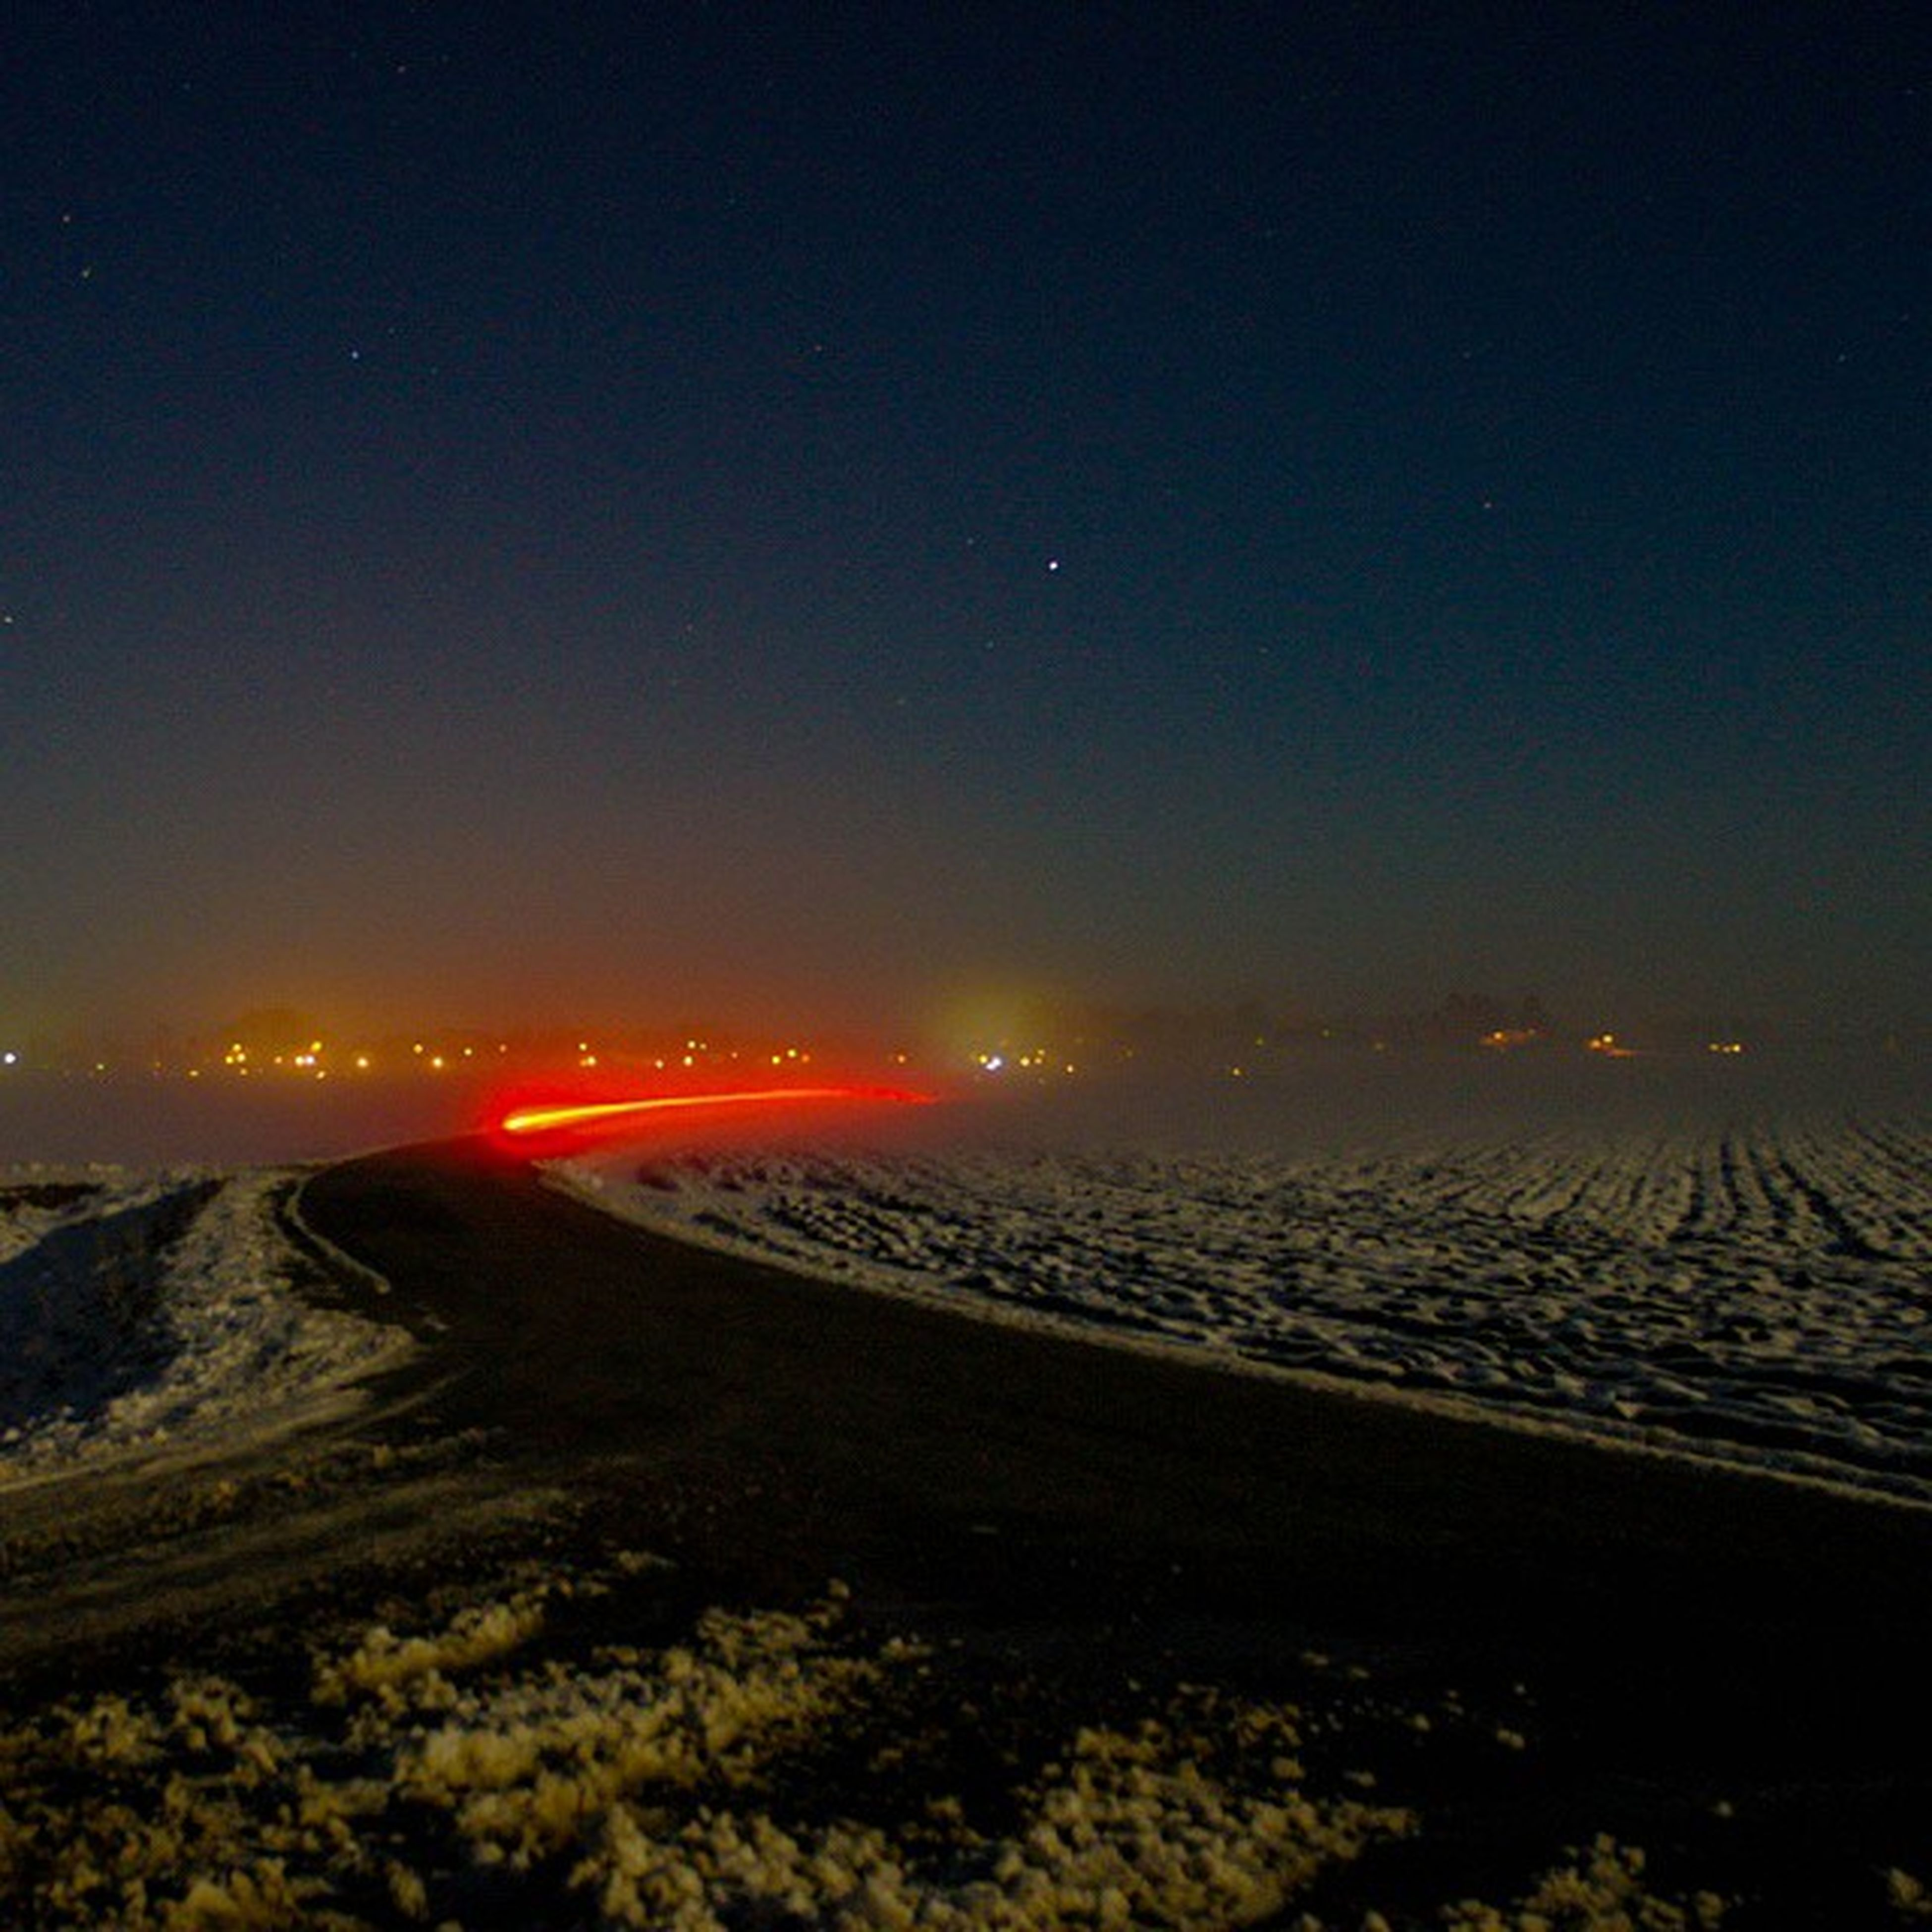 scenics, tranquil scene, night, illuminated, tranquility, landscape, beauty in nature, nature, sky, sunset, mountain, idyllic, copy space, clear sky, snow, winter, transportation, non-urban scene, road, outdoors